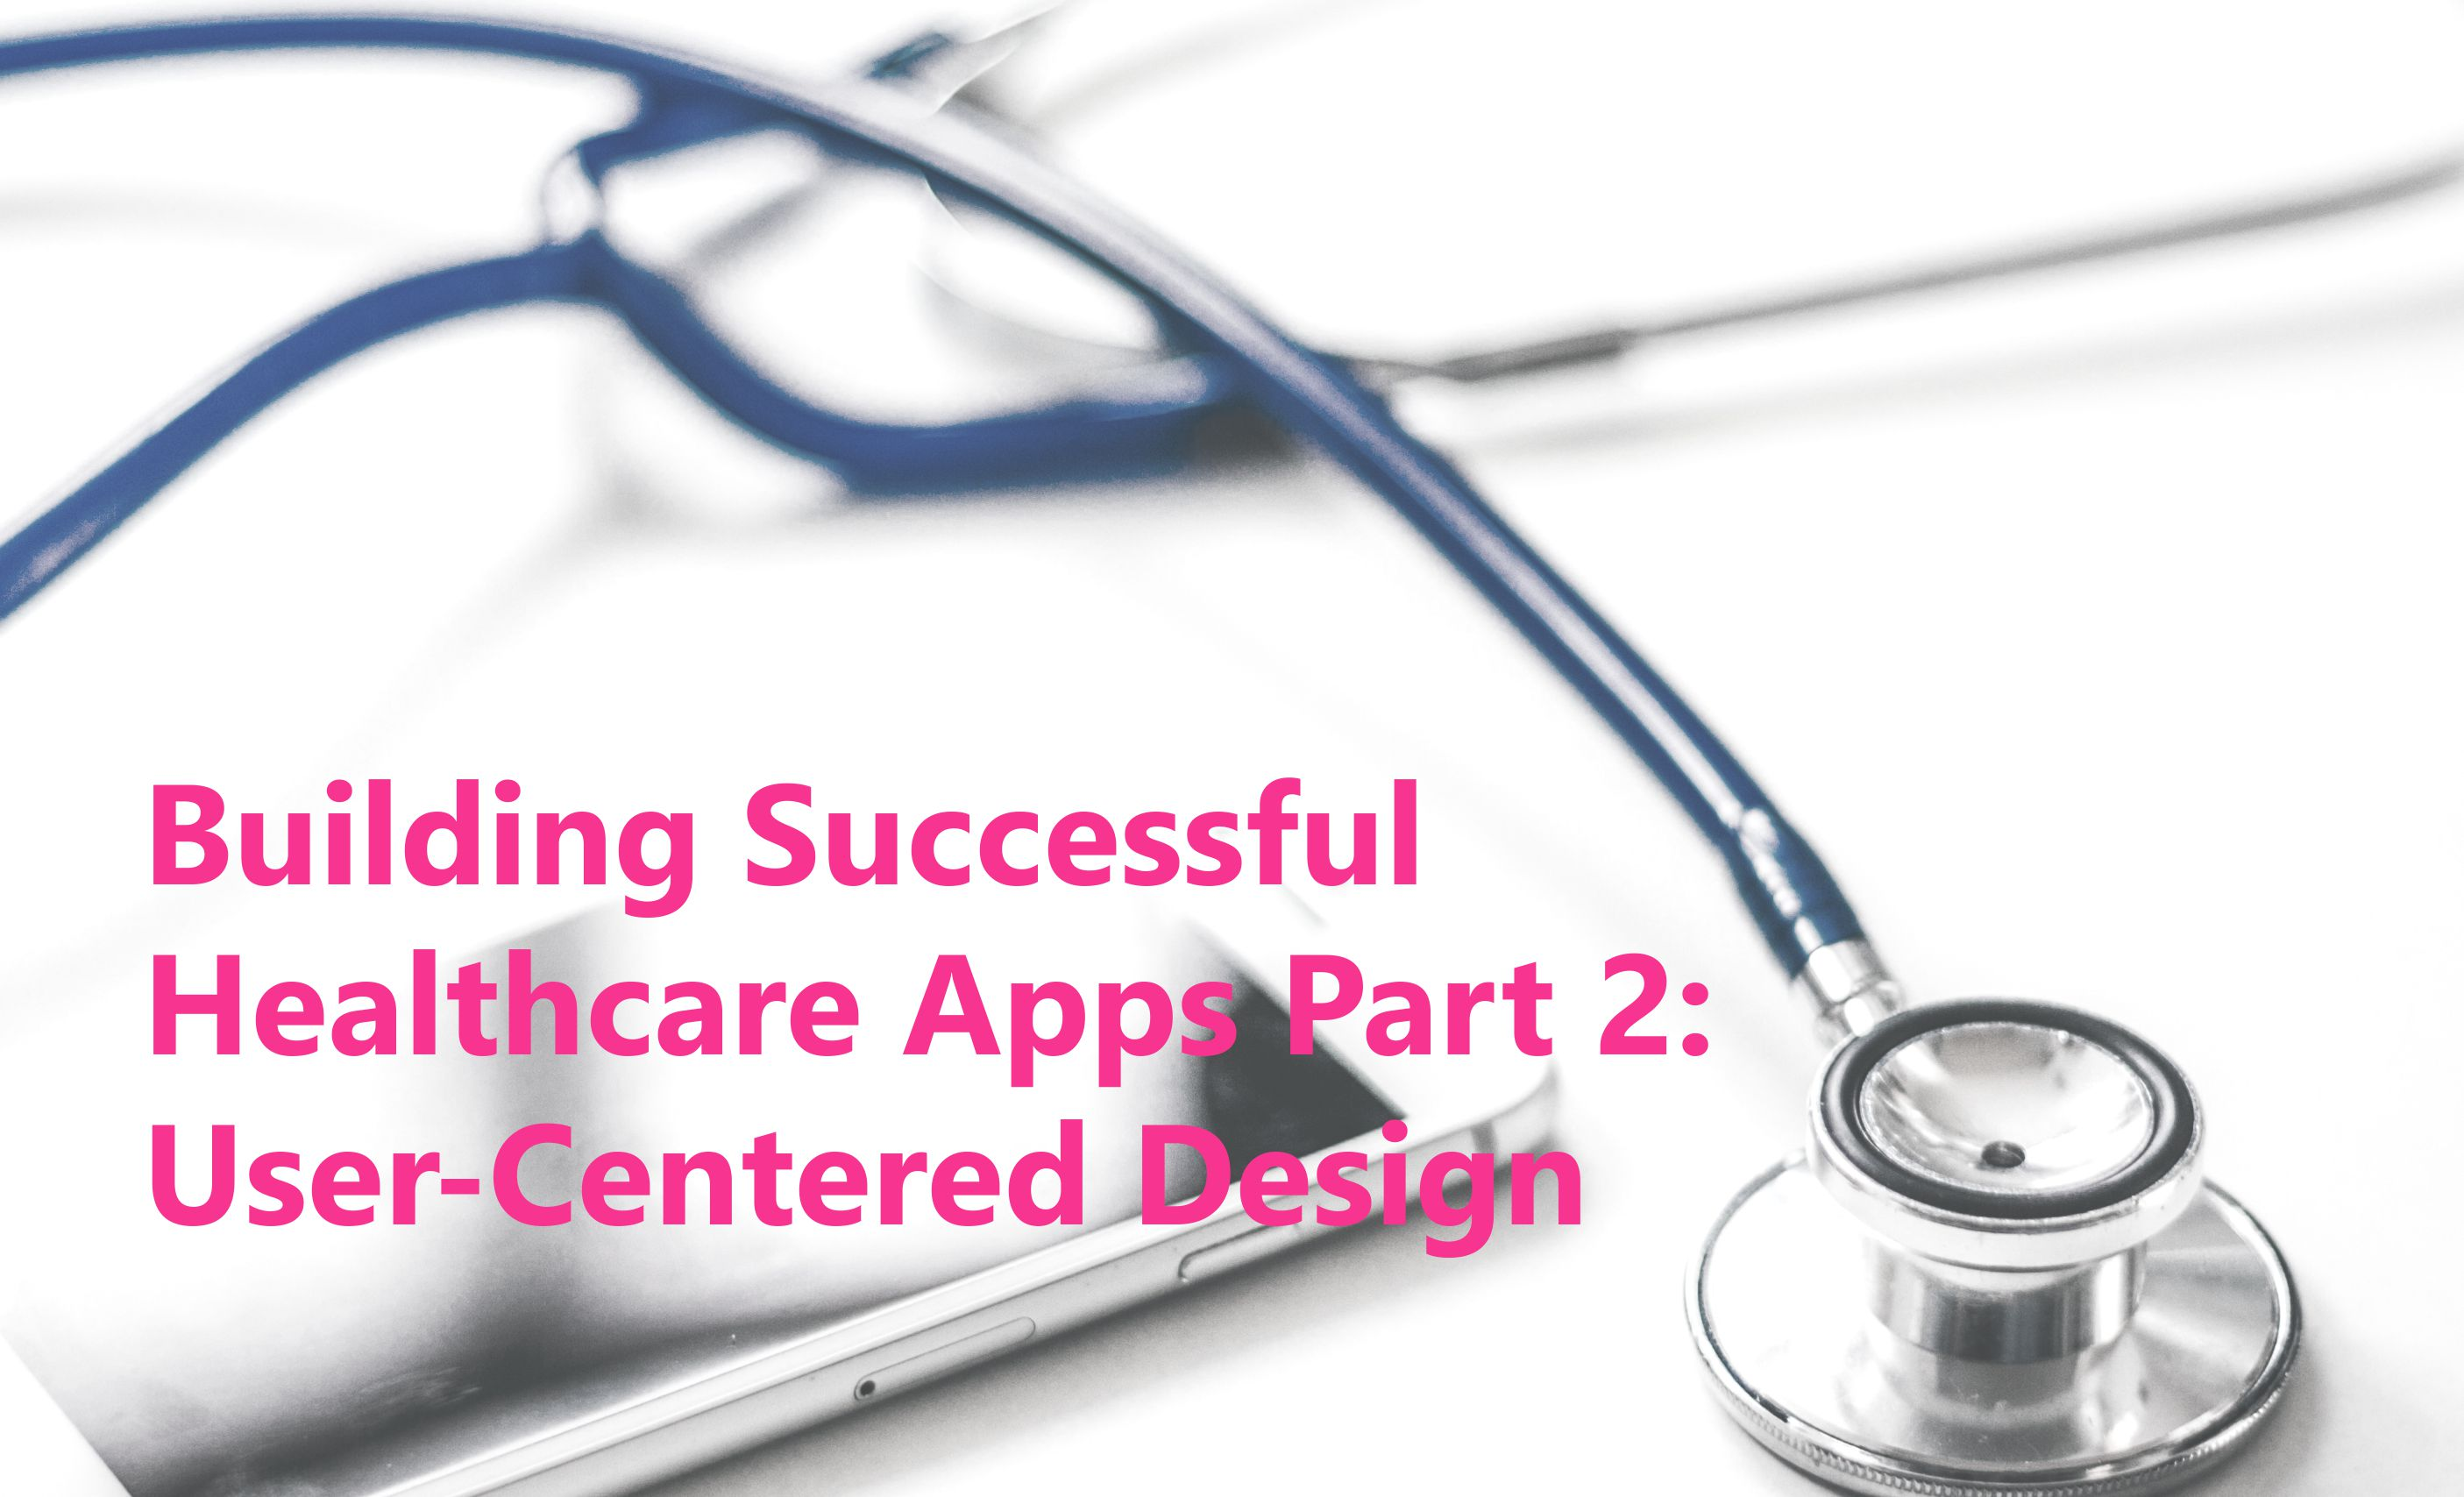 Building Successful Healthcare Apps Part 2: User-Centered Designs for Health